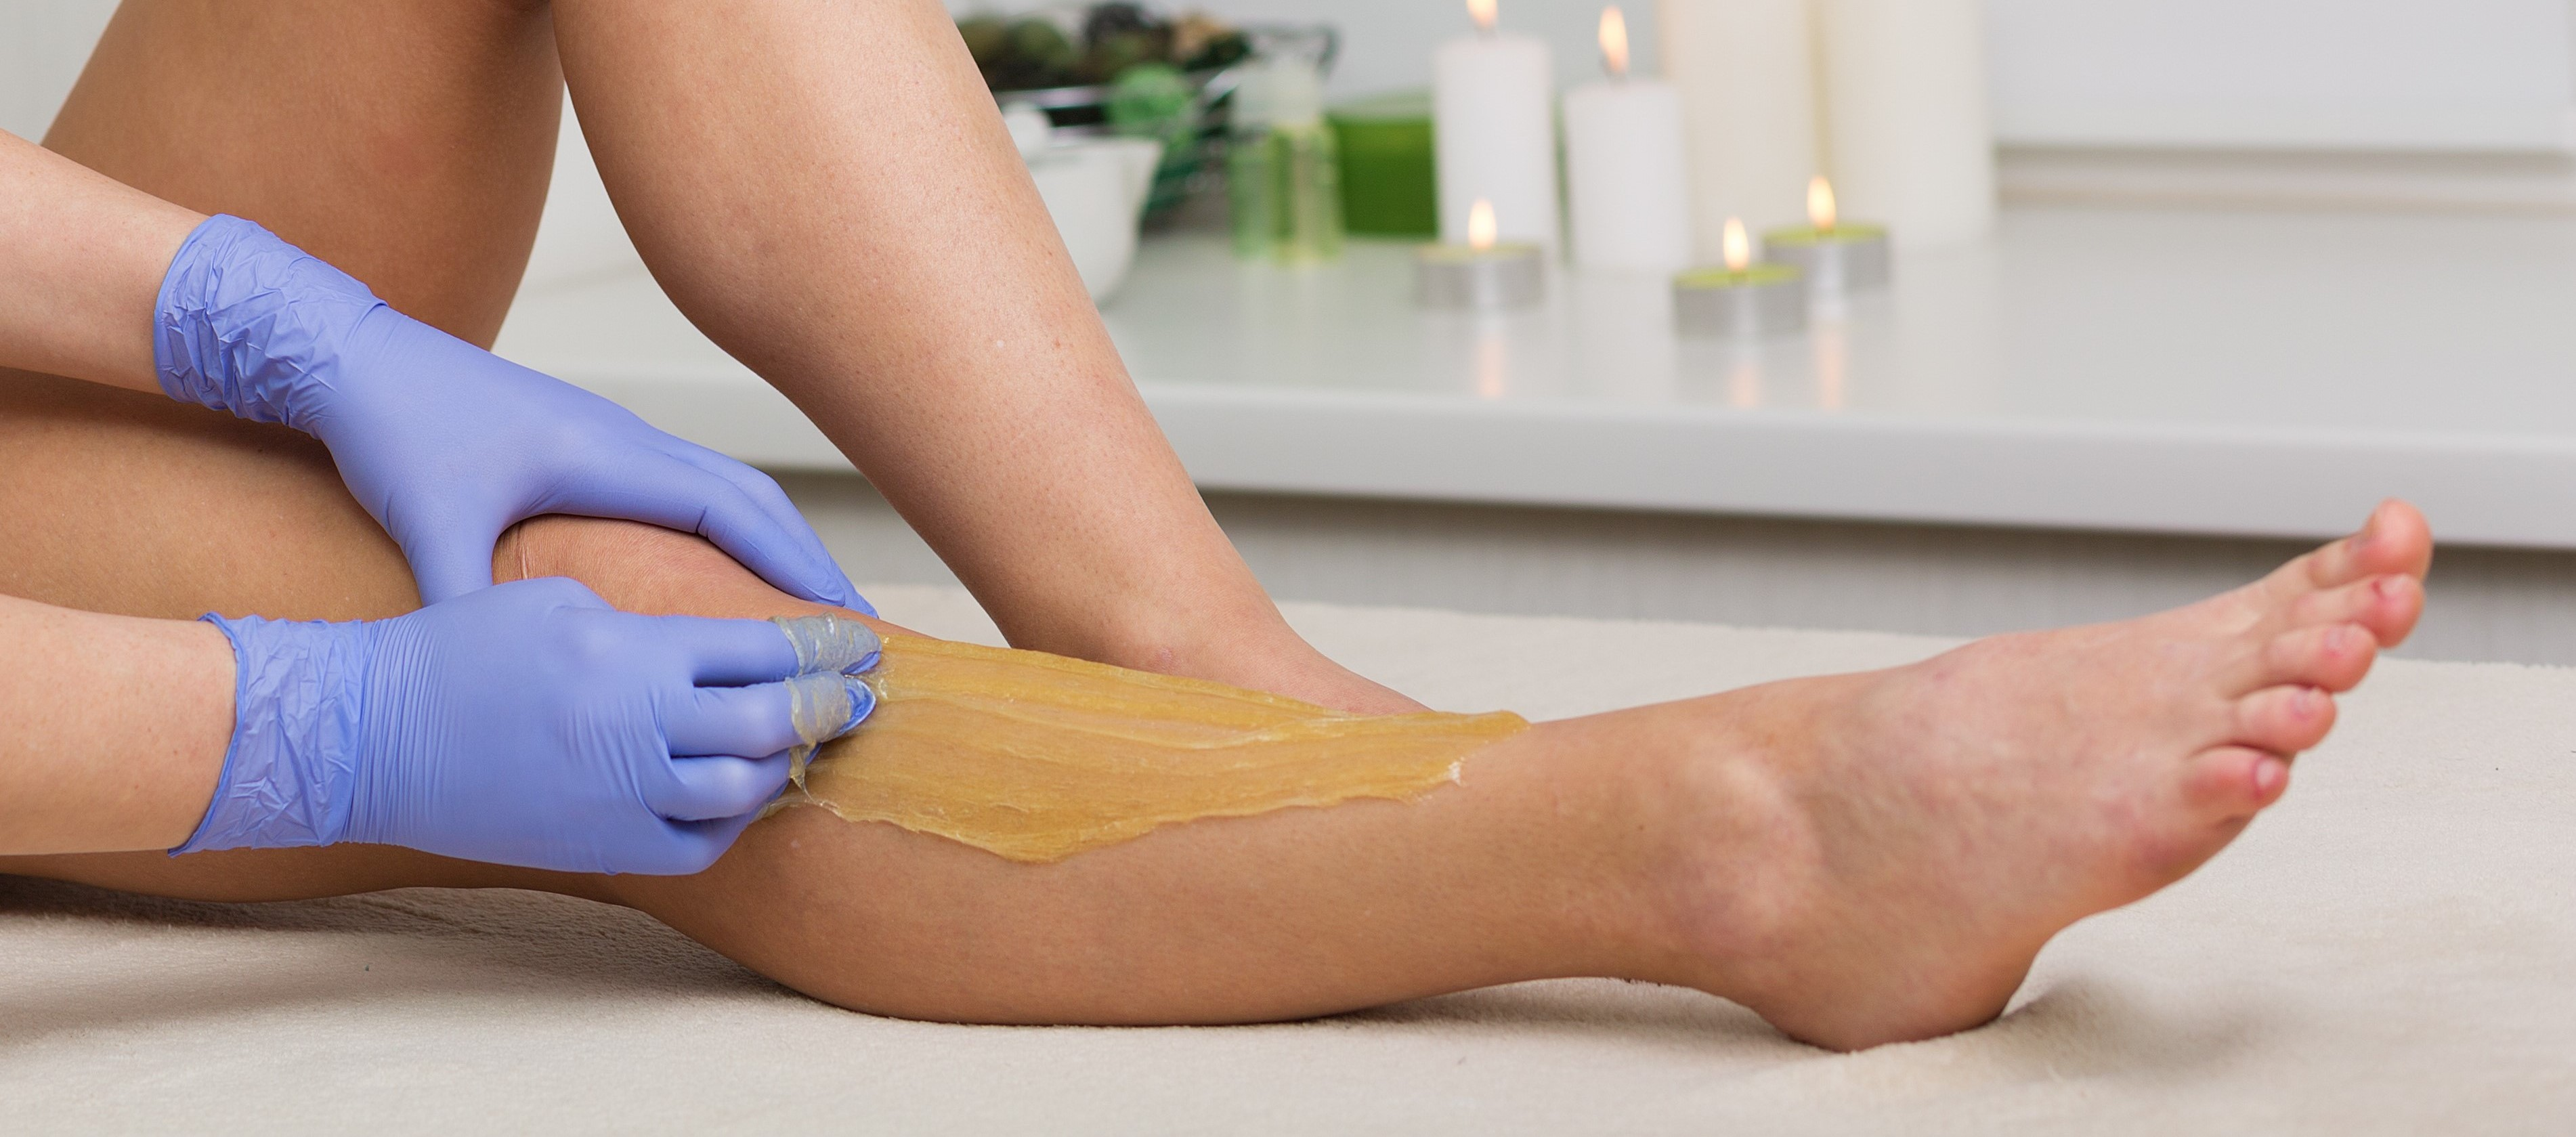 Body Sugaring Hair Removal offered at Spatique in Overland Park Kansas